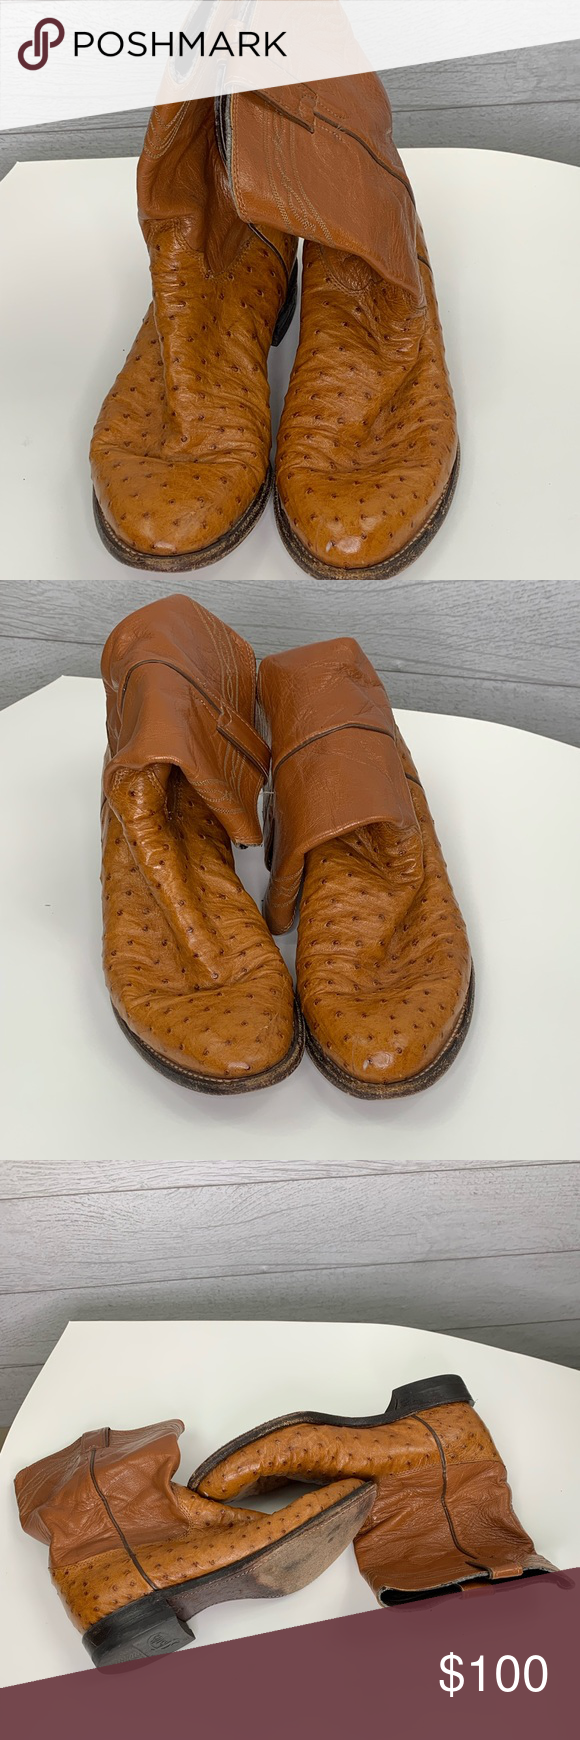 Justin Cognac Full Foot Ostrich Quill Roper Boots Justin Cognac Full Foot Ostrich Quill Roper Boots Condition Roper Boots Western Cowboy Boots Justin Boots